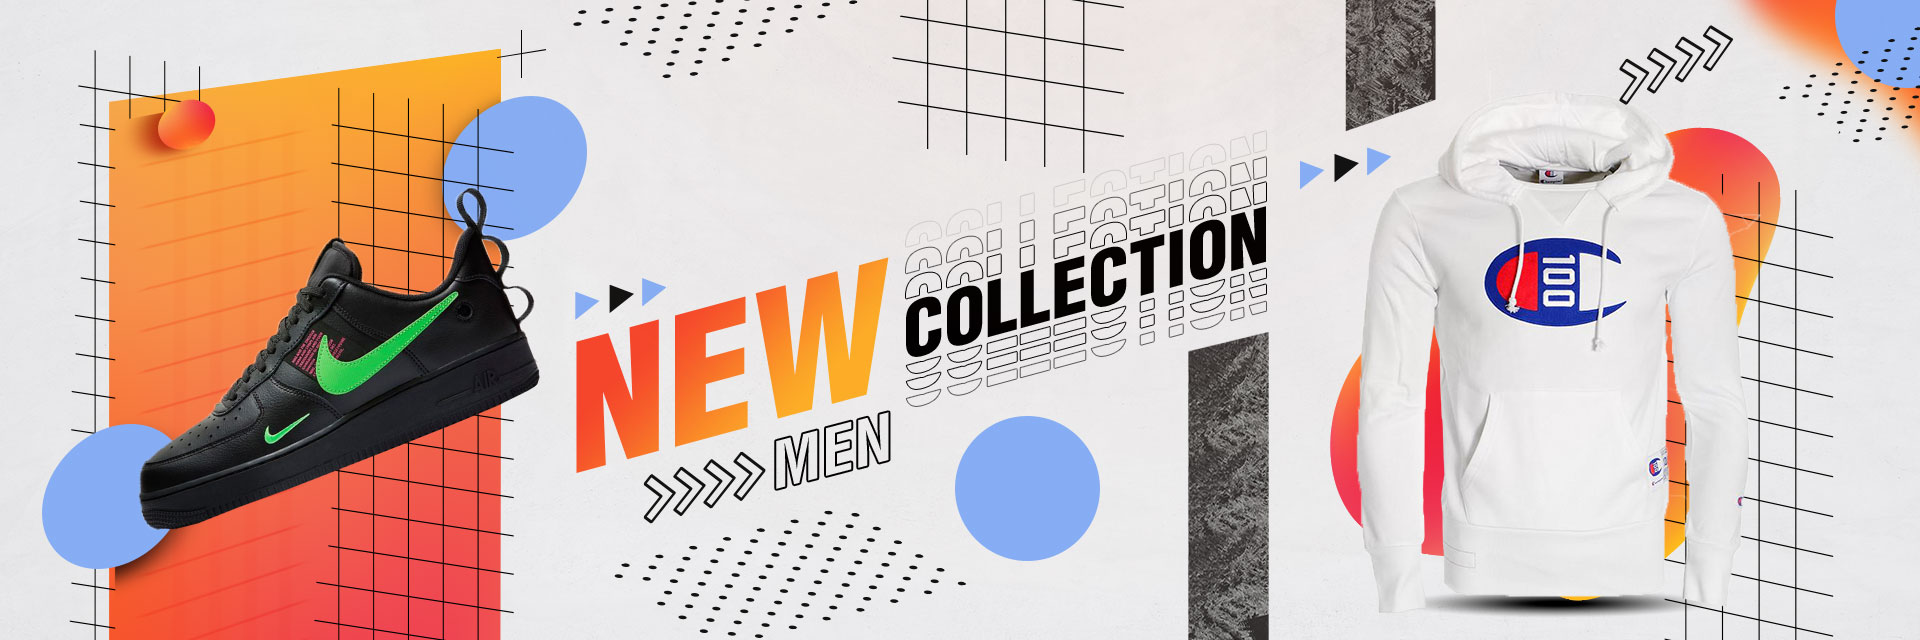 New collection Men